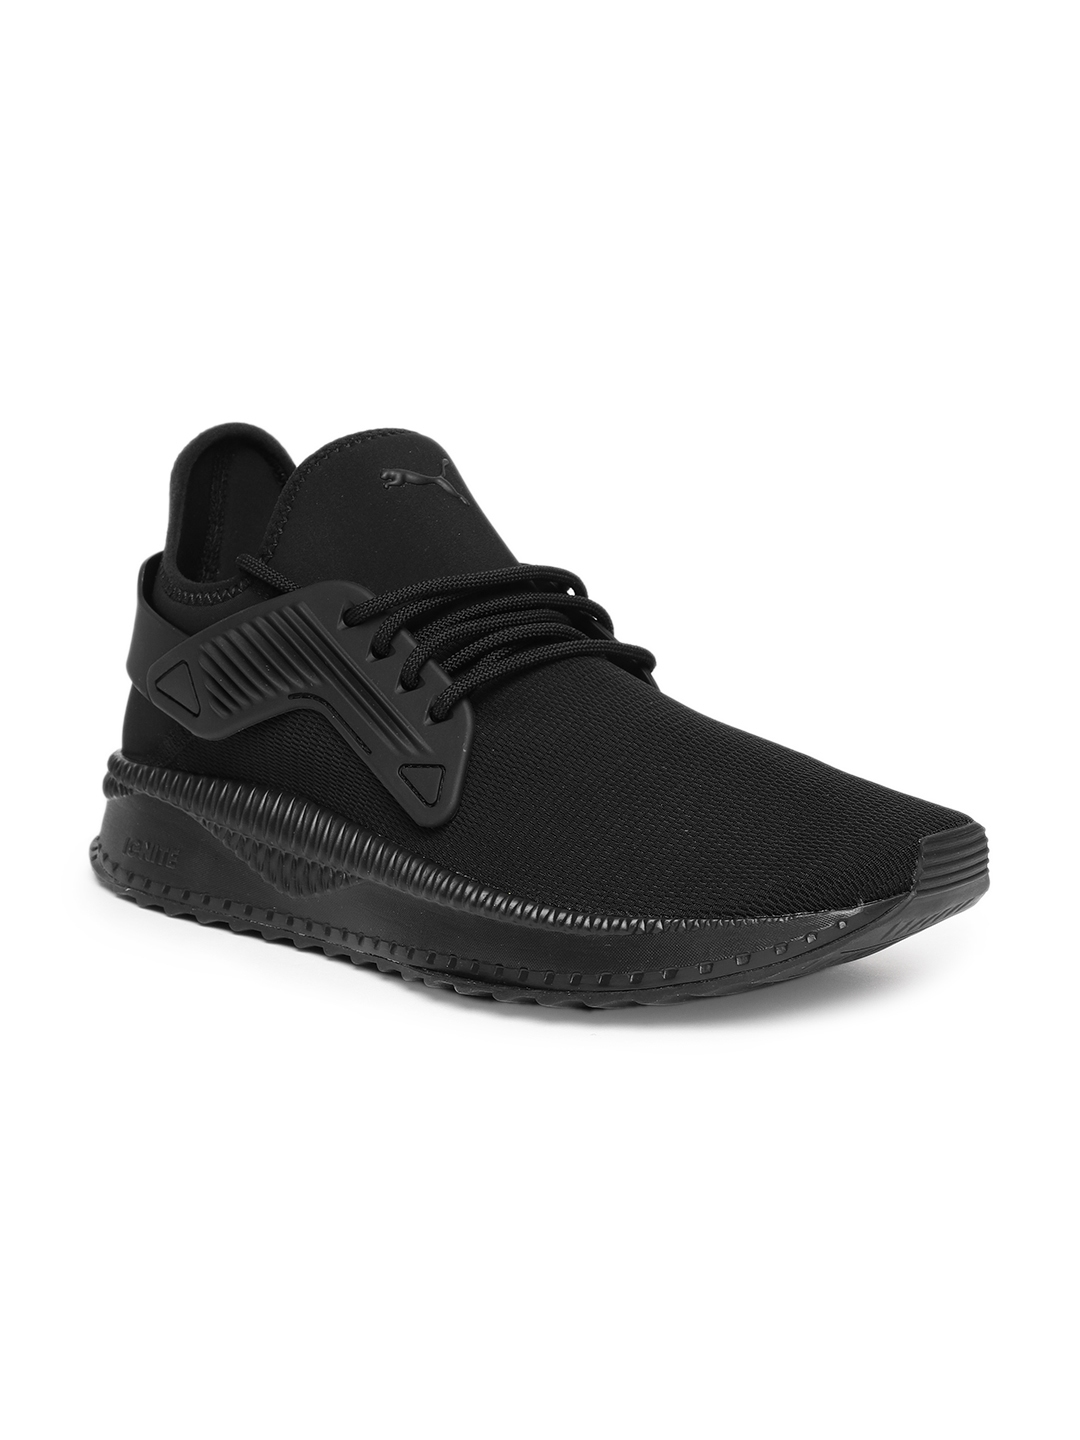 406a79308c7 Buy Puma Men Black TSUGI Cage Sneakers - Casual Shoes for Men ...